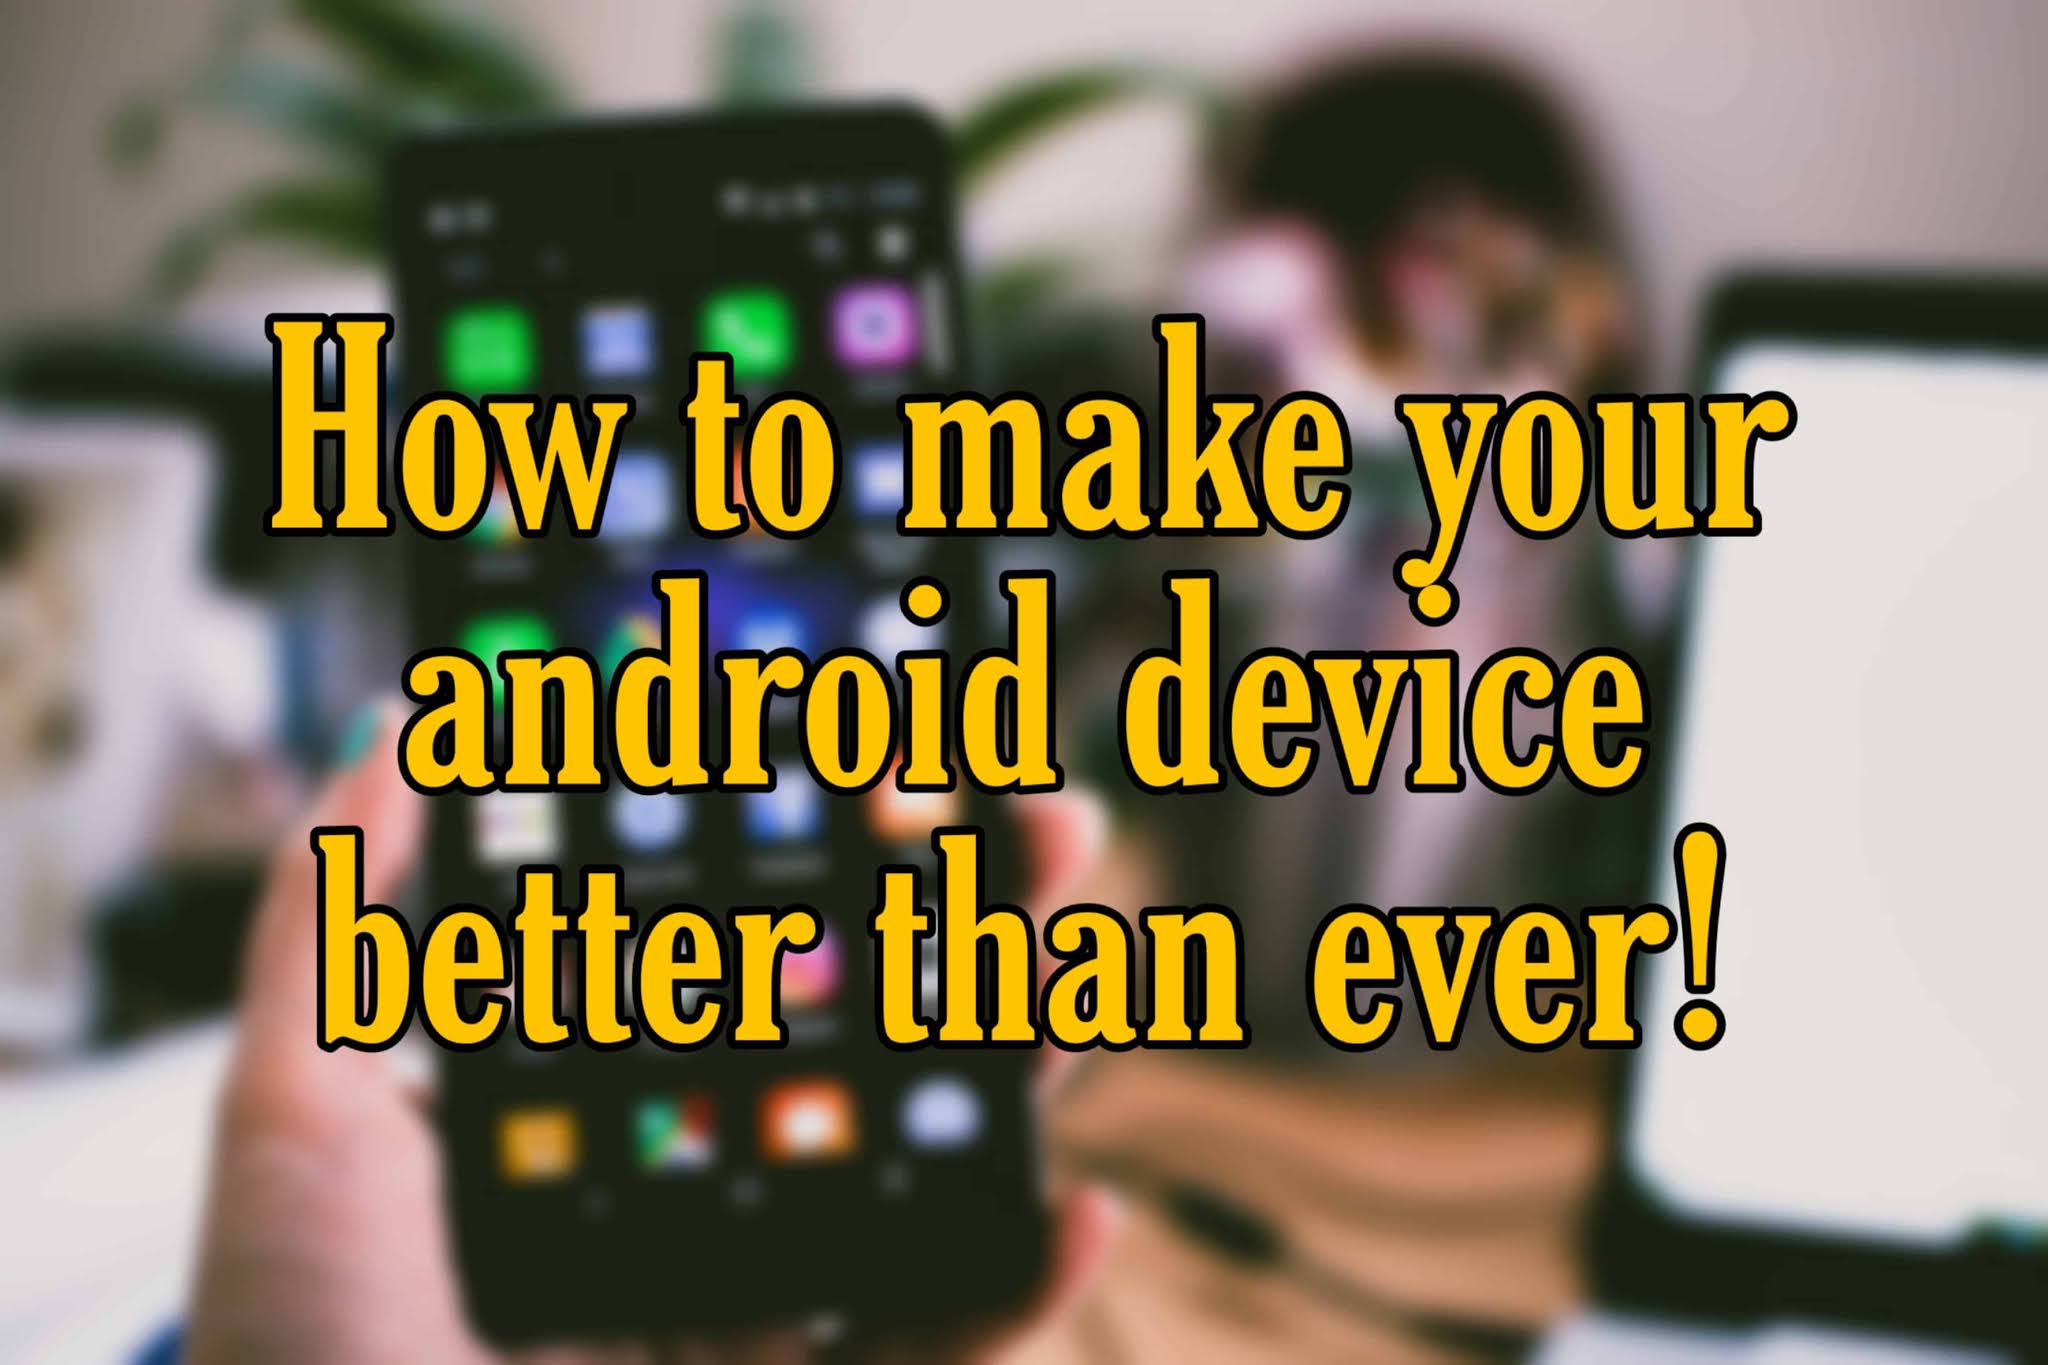 How to make your Android device better than ever!!!